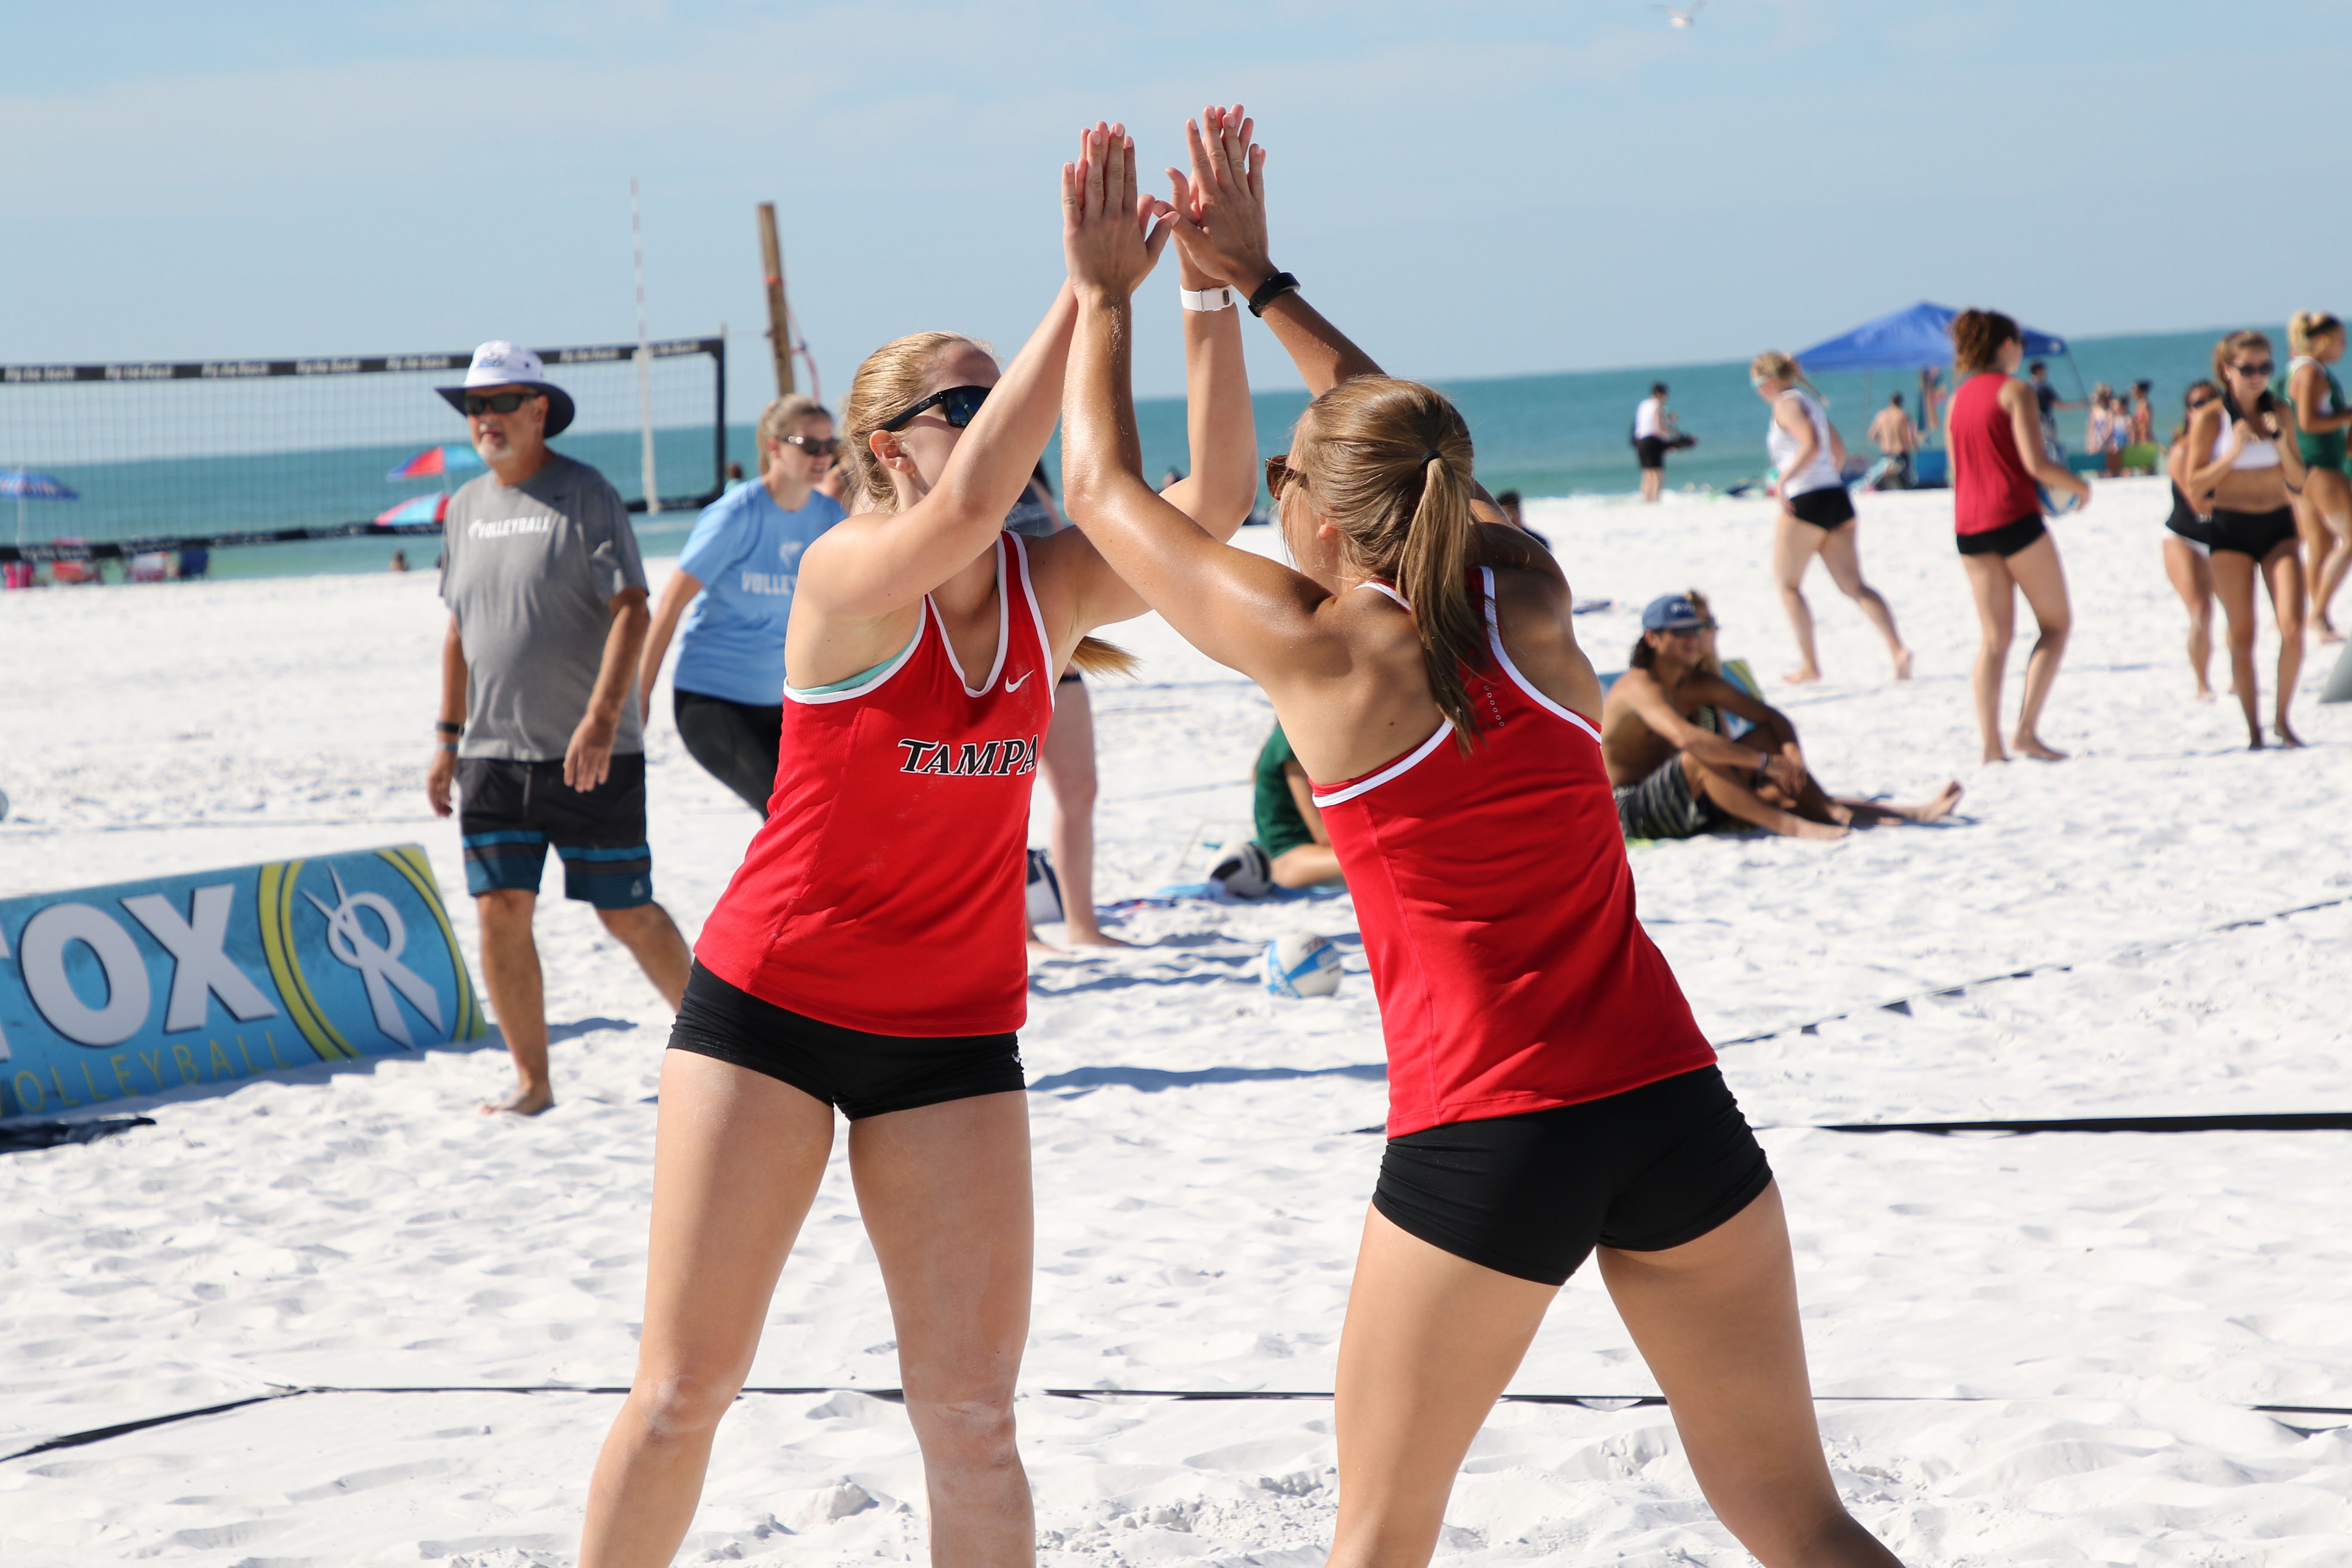 University Of Tampa Division I Beach Volleyball University Of Tampa Beach Volleyball Volleyball